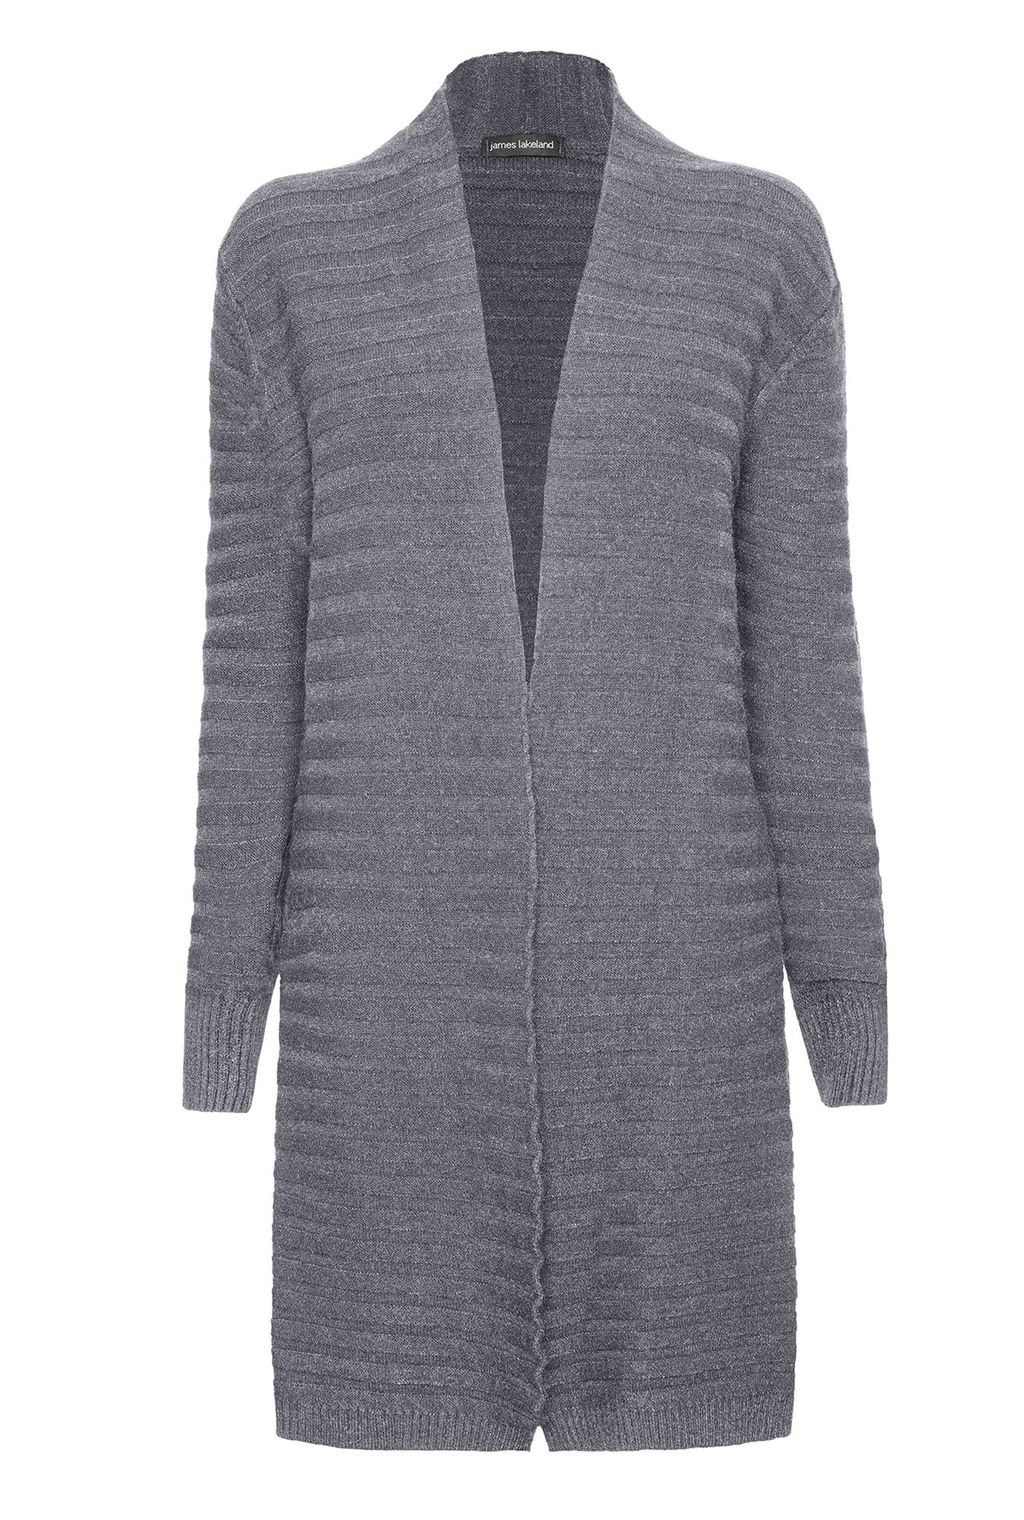 Ribbed Cardigan, Grey - pattern: plain; neckline: collarless open; style: open front; predominant colour: mid grey; occasions: casual; fibres: nylon - mix; fit: loose; length: mid thigh; sleeve length: long sleeve; sleeve style: standard; texture group: knits/crochet; pattern type: fabric; season: a/w 2015; wardrobe: basic